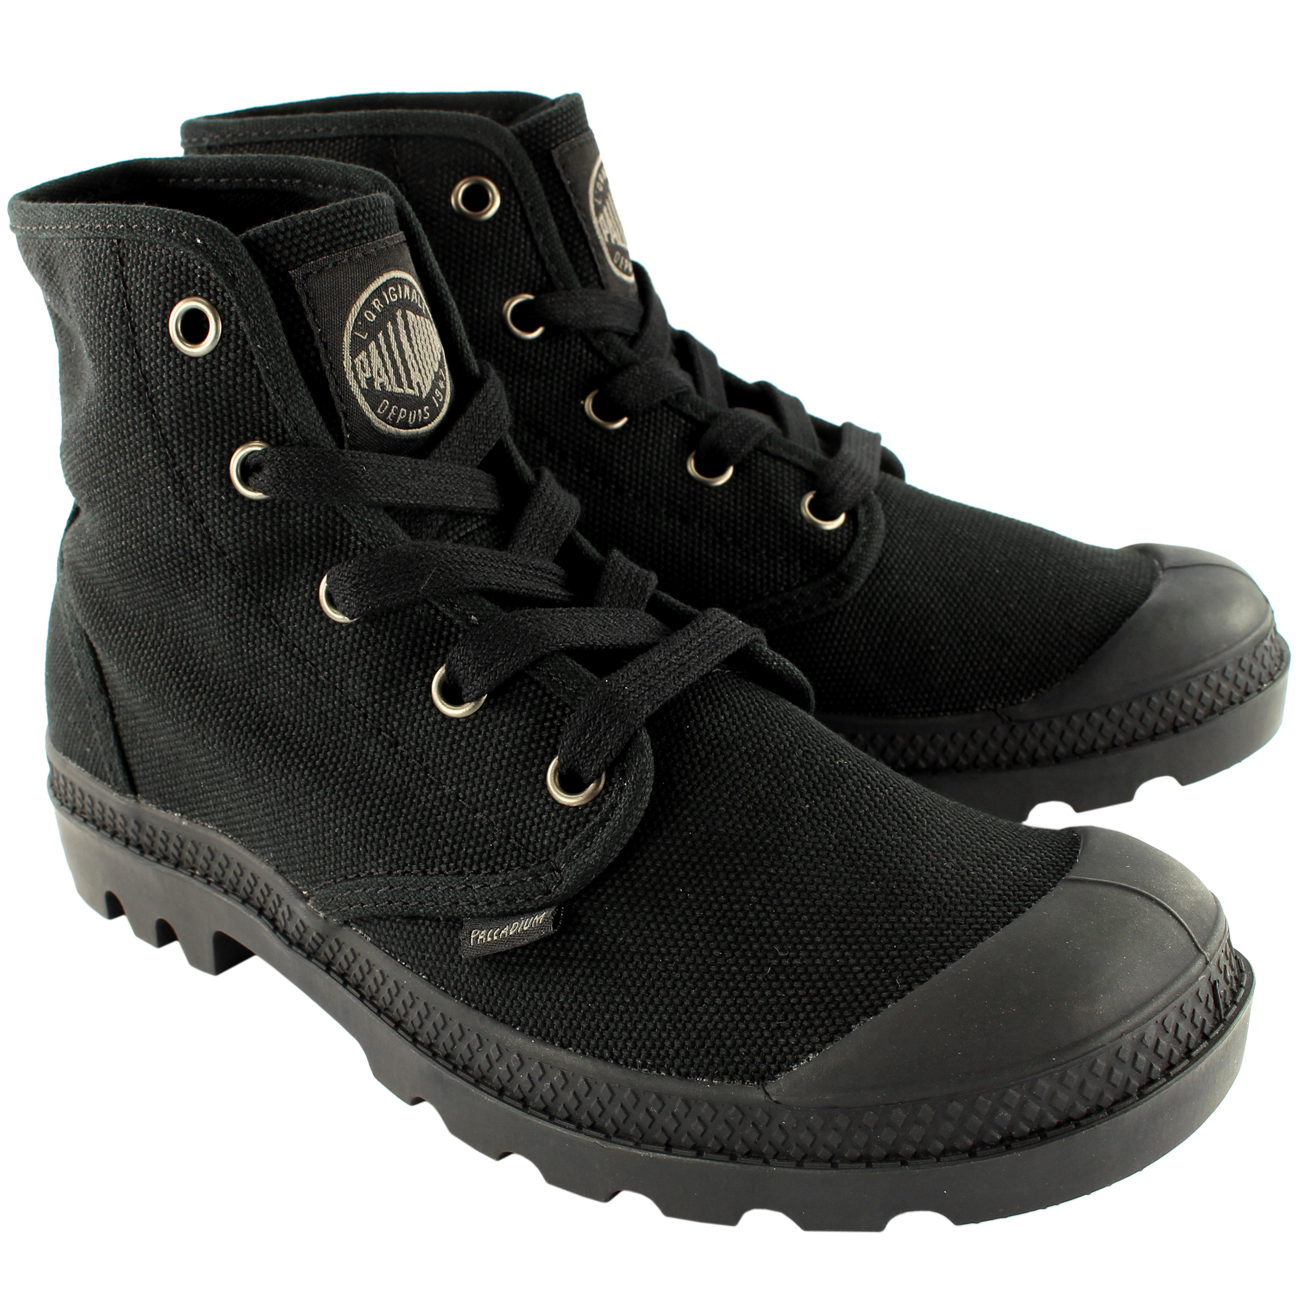 Palladium Pampa Trainer Boots